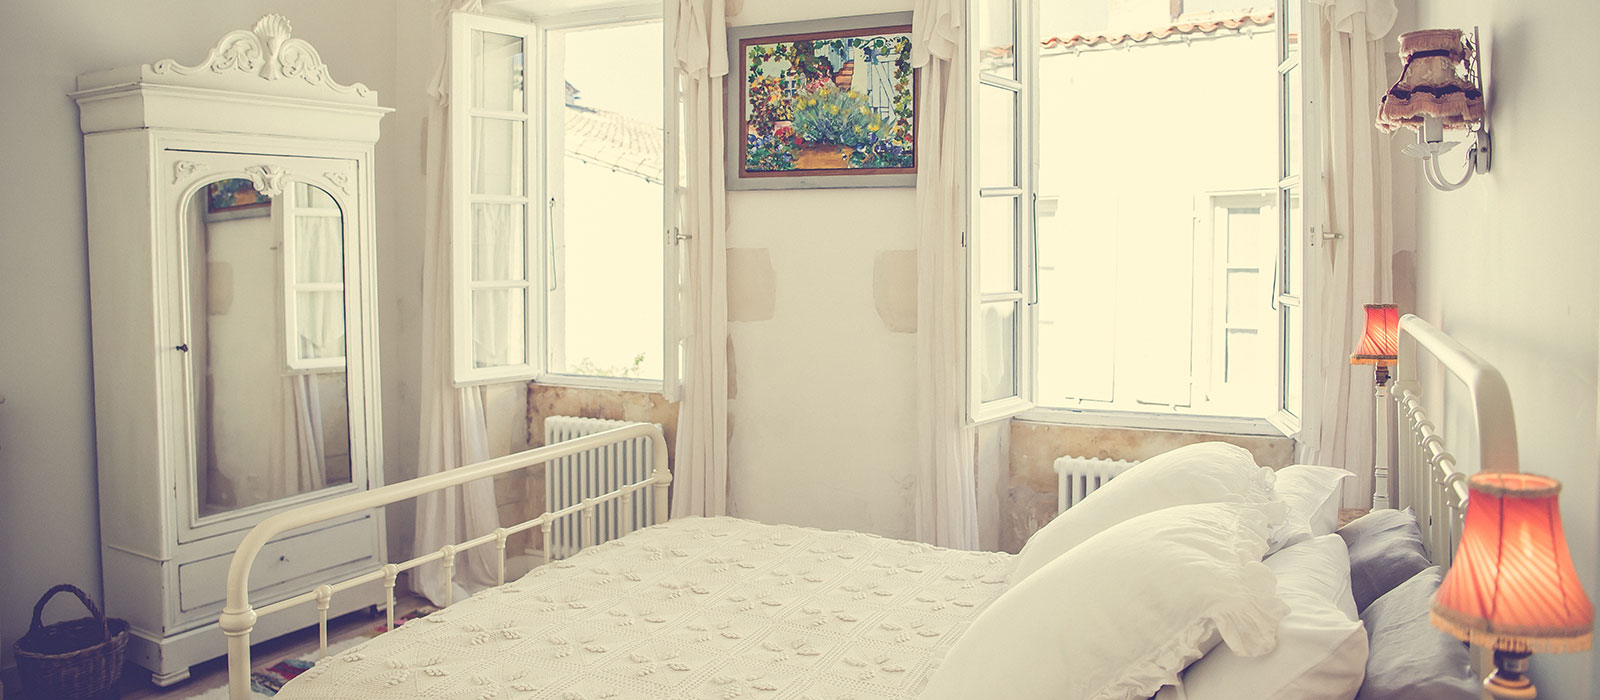 GALATHEE_ILEDERE_HOLIDAY_HOME_BEDROOM